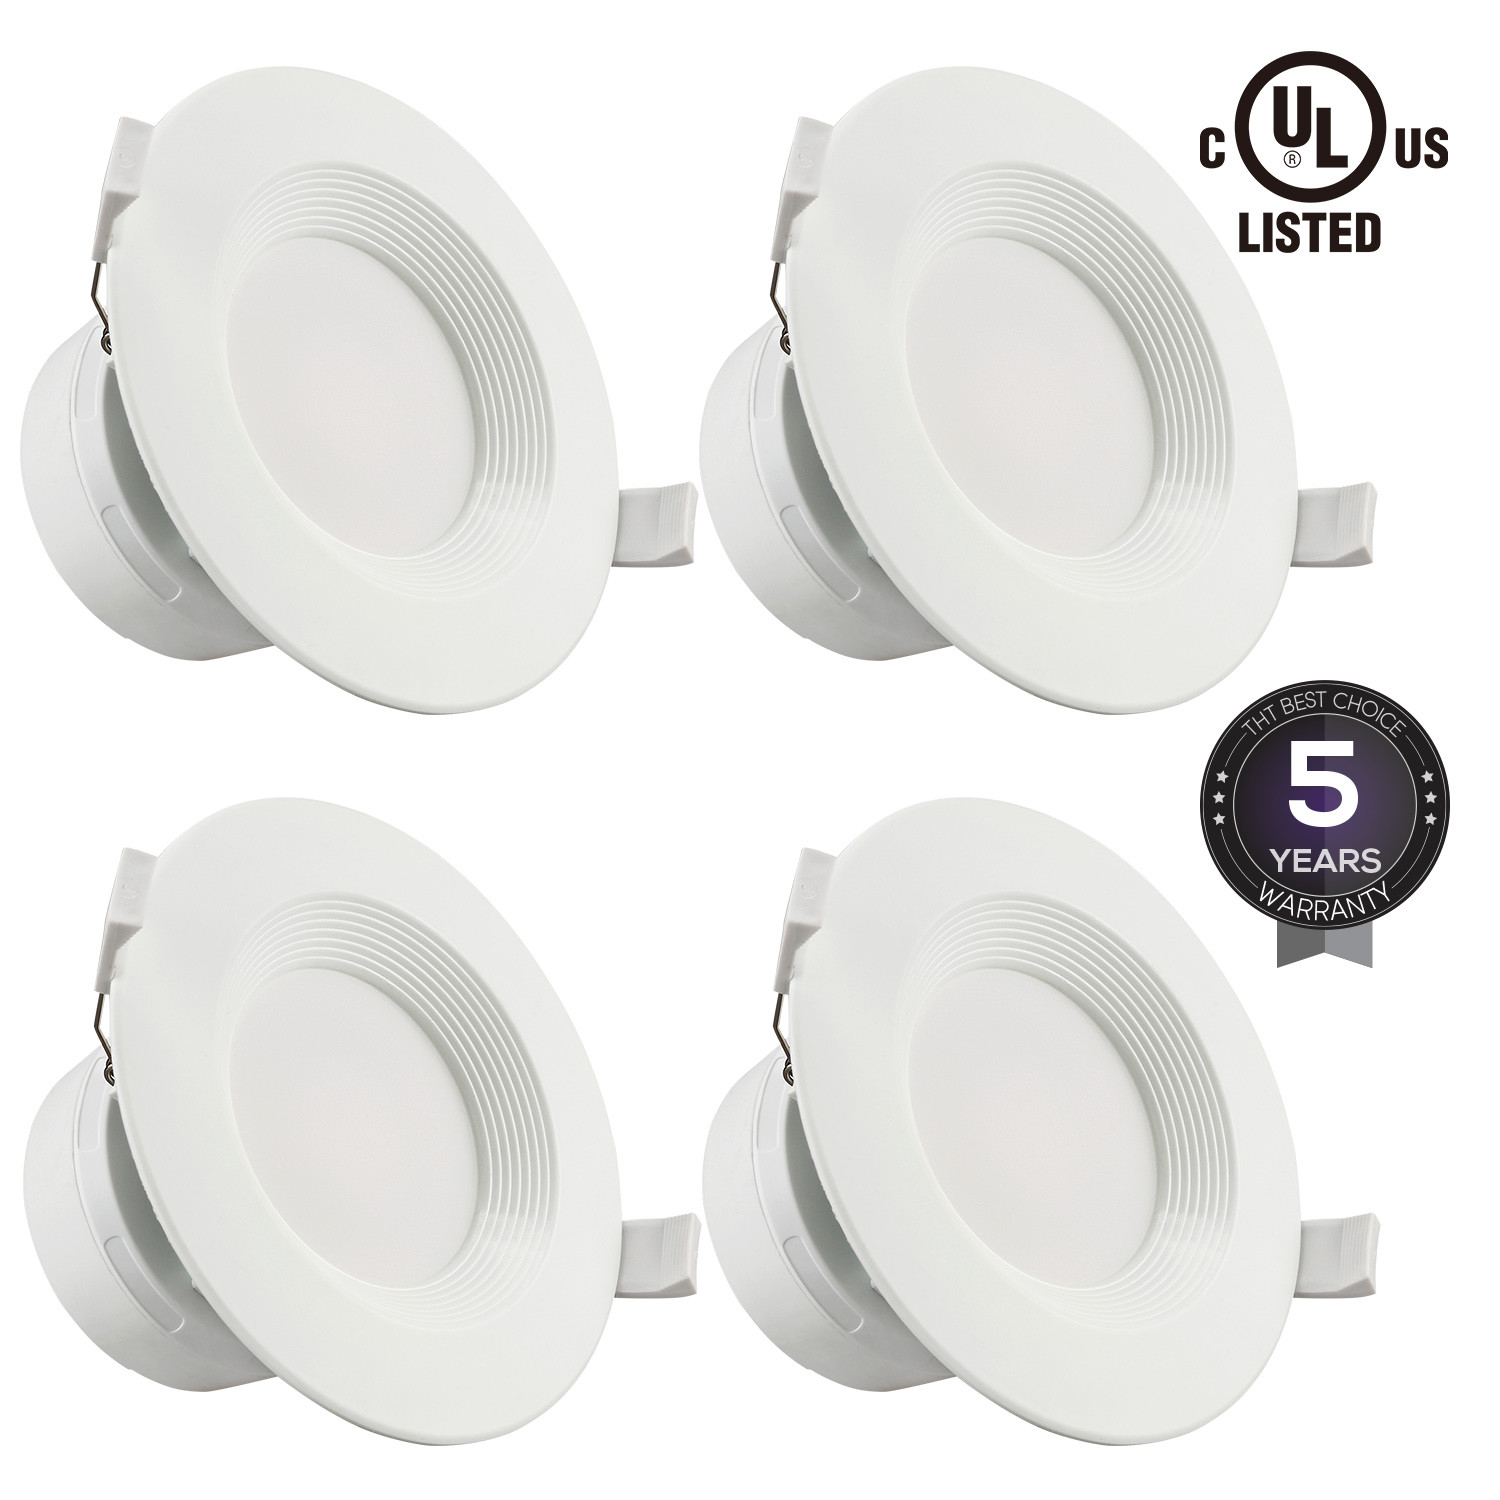 4 Pack 4 Inch 7W LED Recessed Lighting, 2700K Soft White